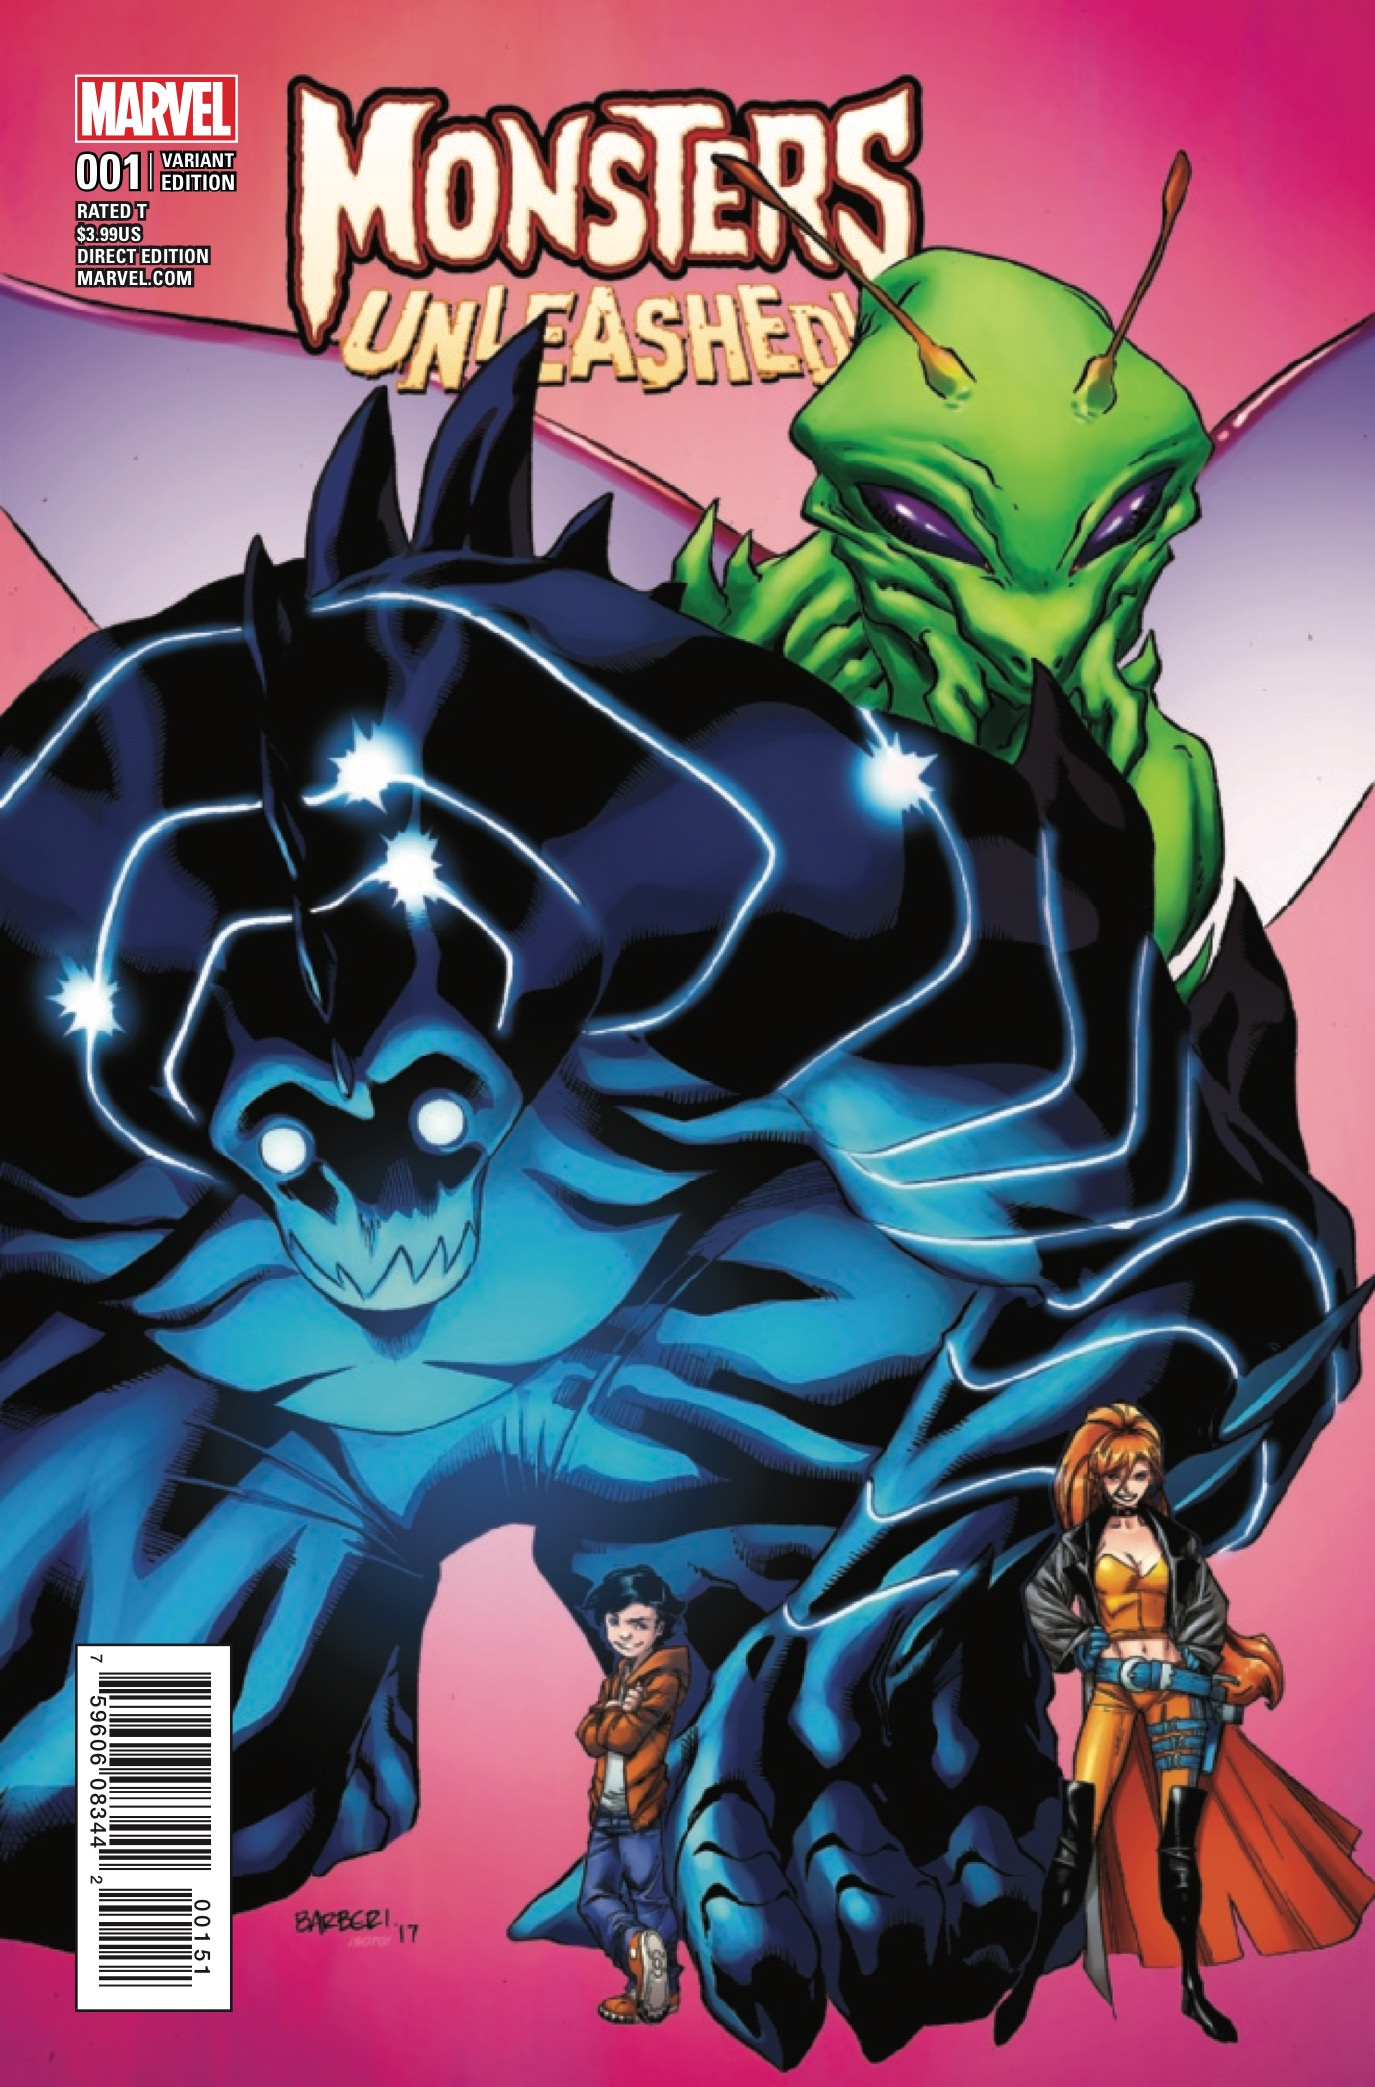 Monsters Unleashed #1 Review